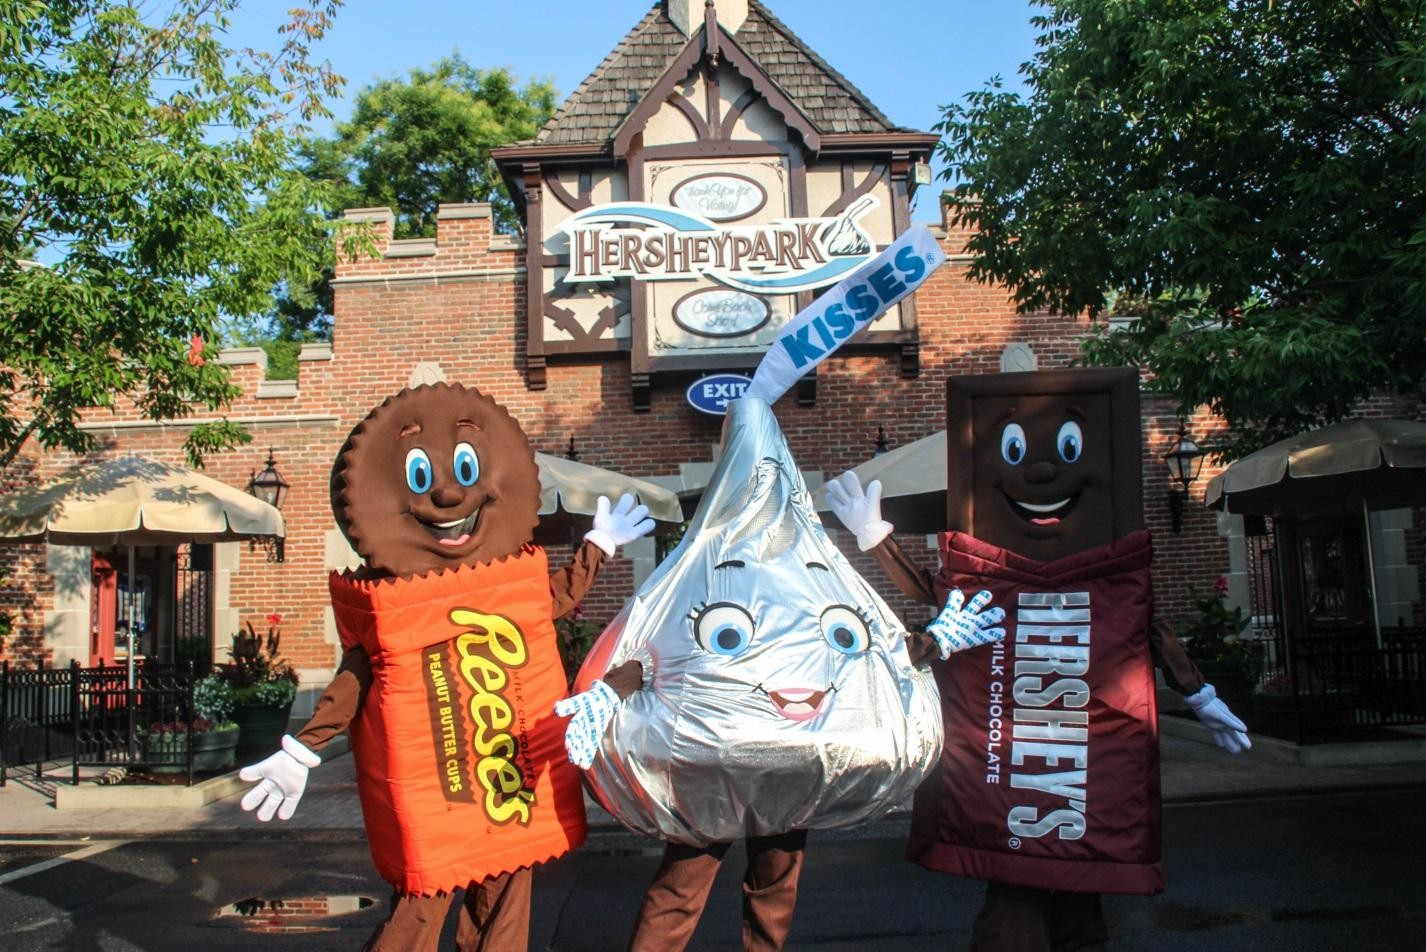 Season Pass Holders get exclusive meet-and-greets with the Hershey's Characters.